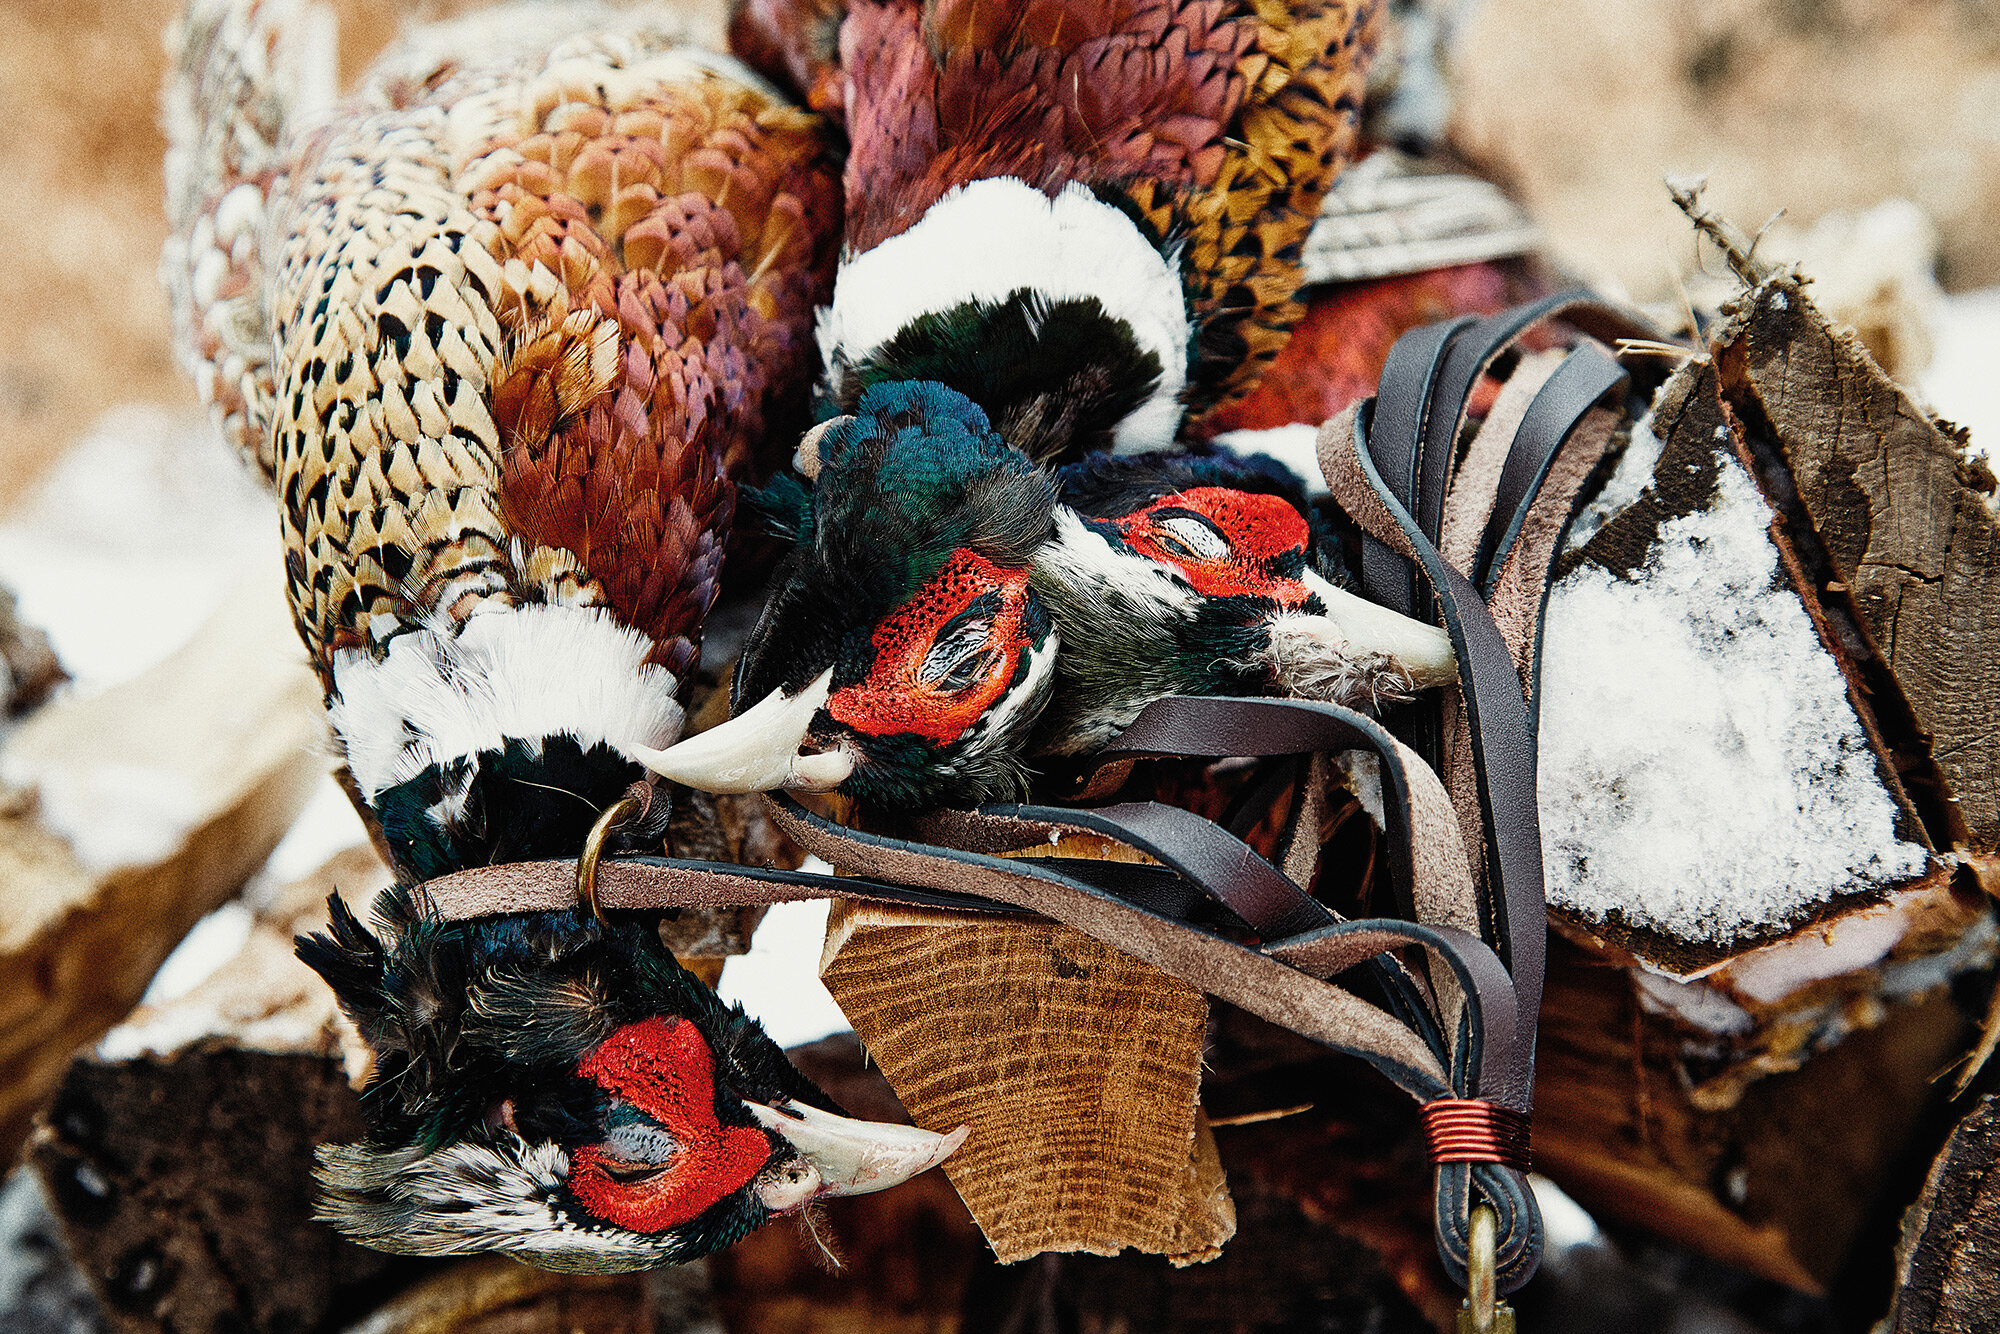 03_Danny-Christensen---The_Urban_Huntsman_Pheasant_1.jpg